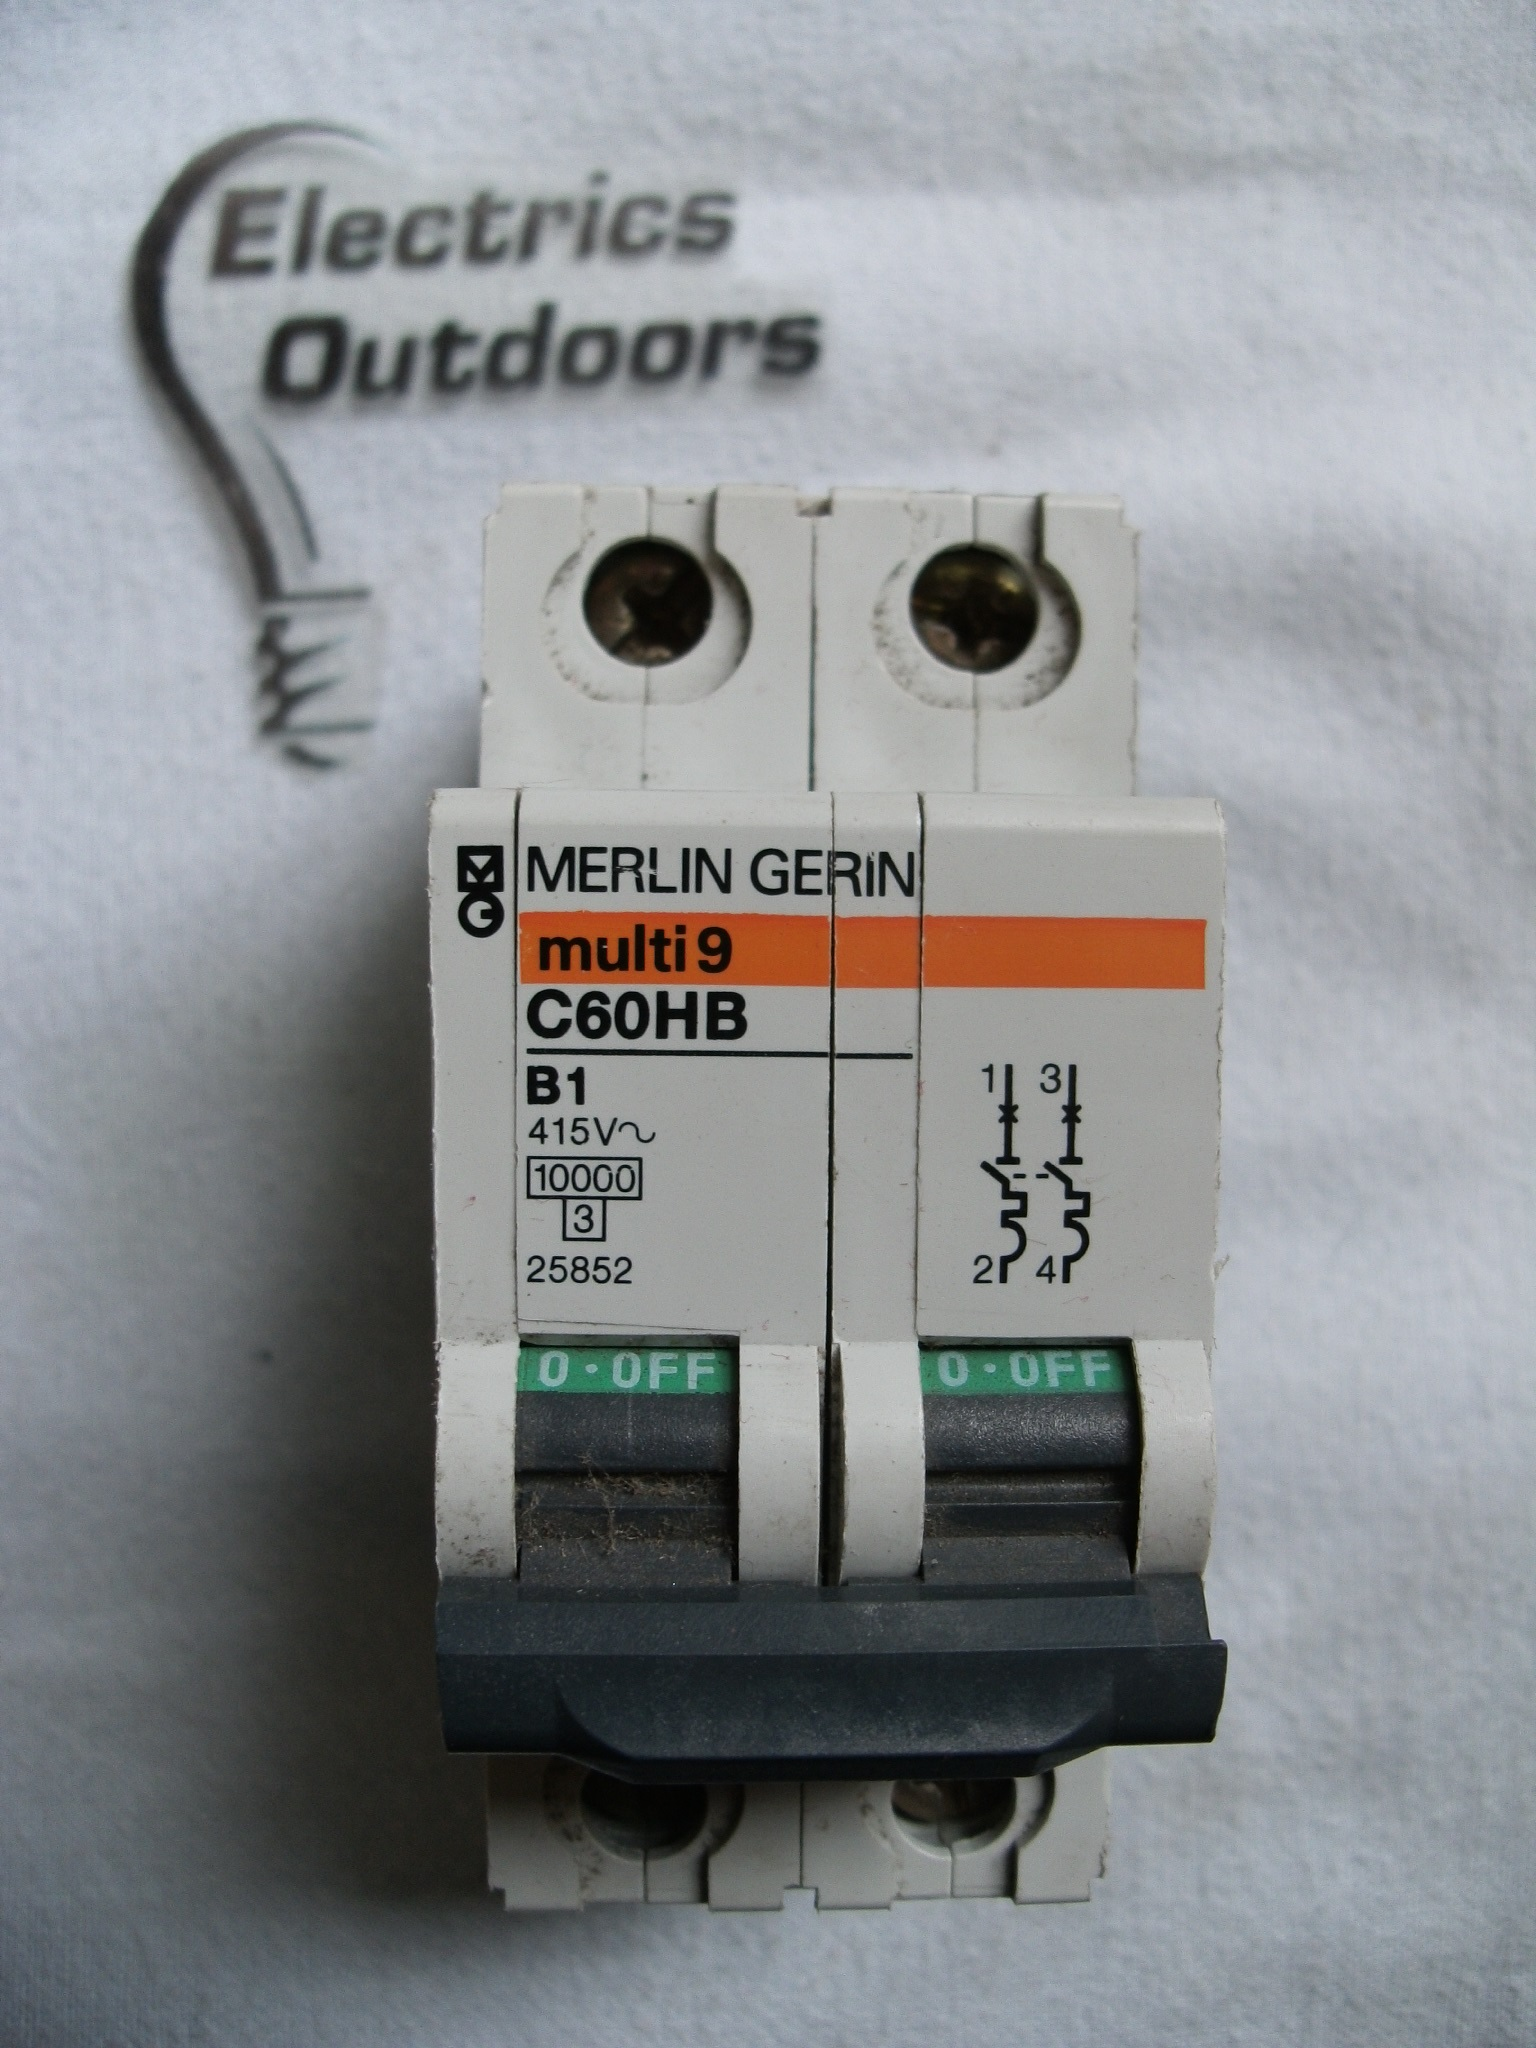 MERLIN GERIN 1 AMP TYPE B 10 kA DOUBLE POLE MCB BREAKER C60HB 25852 MULTI 9 2